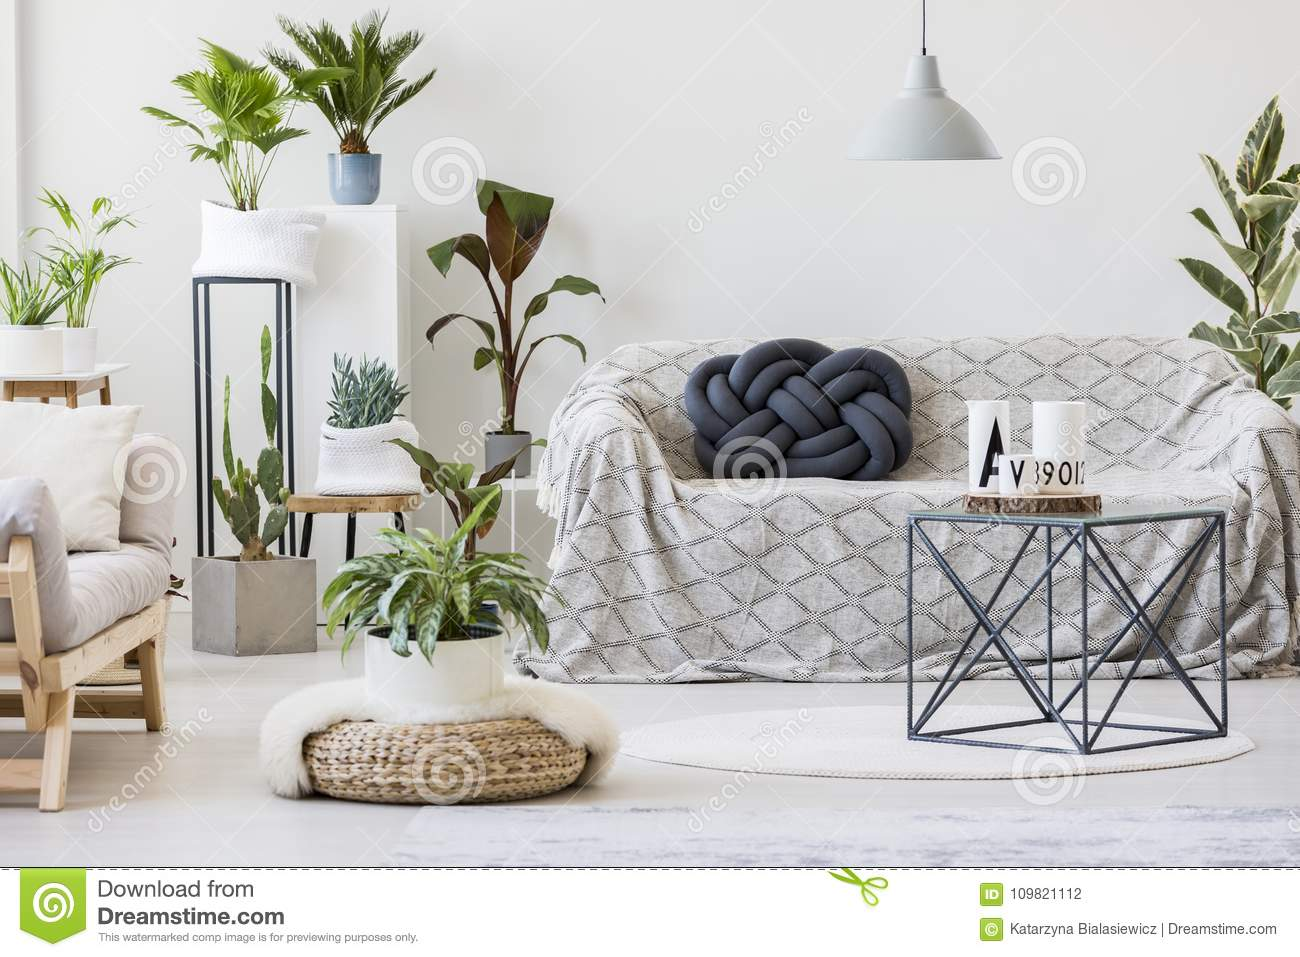 Natural Living Room Interior With Plants Stock Photo - Image of ...